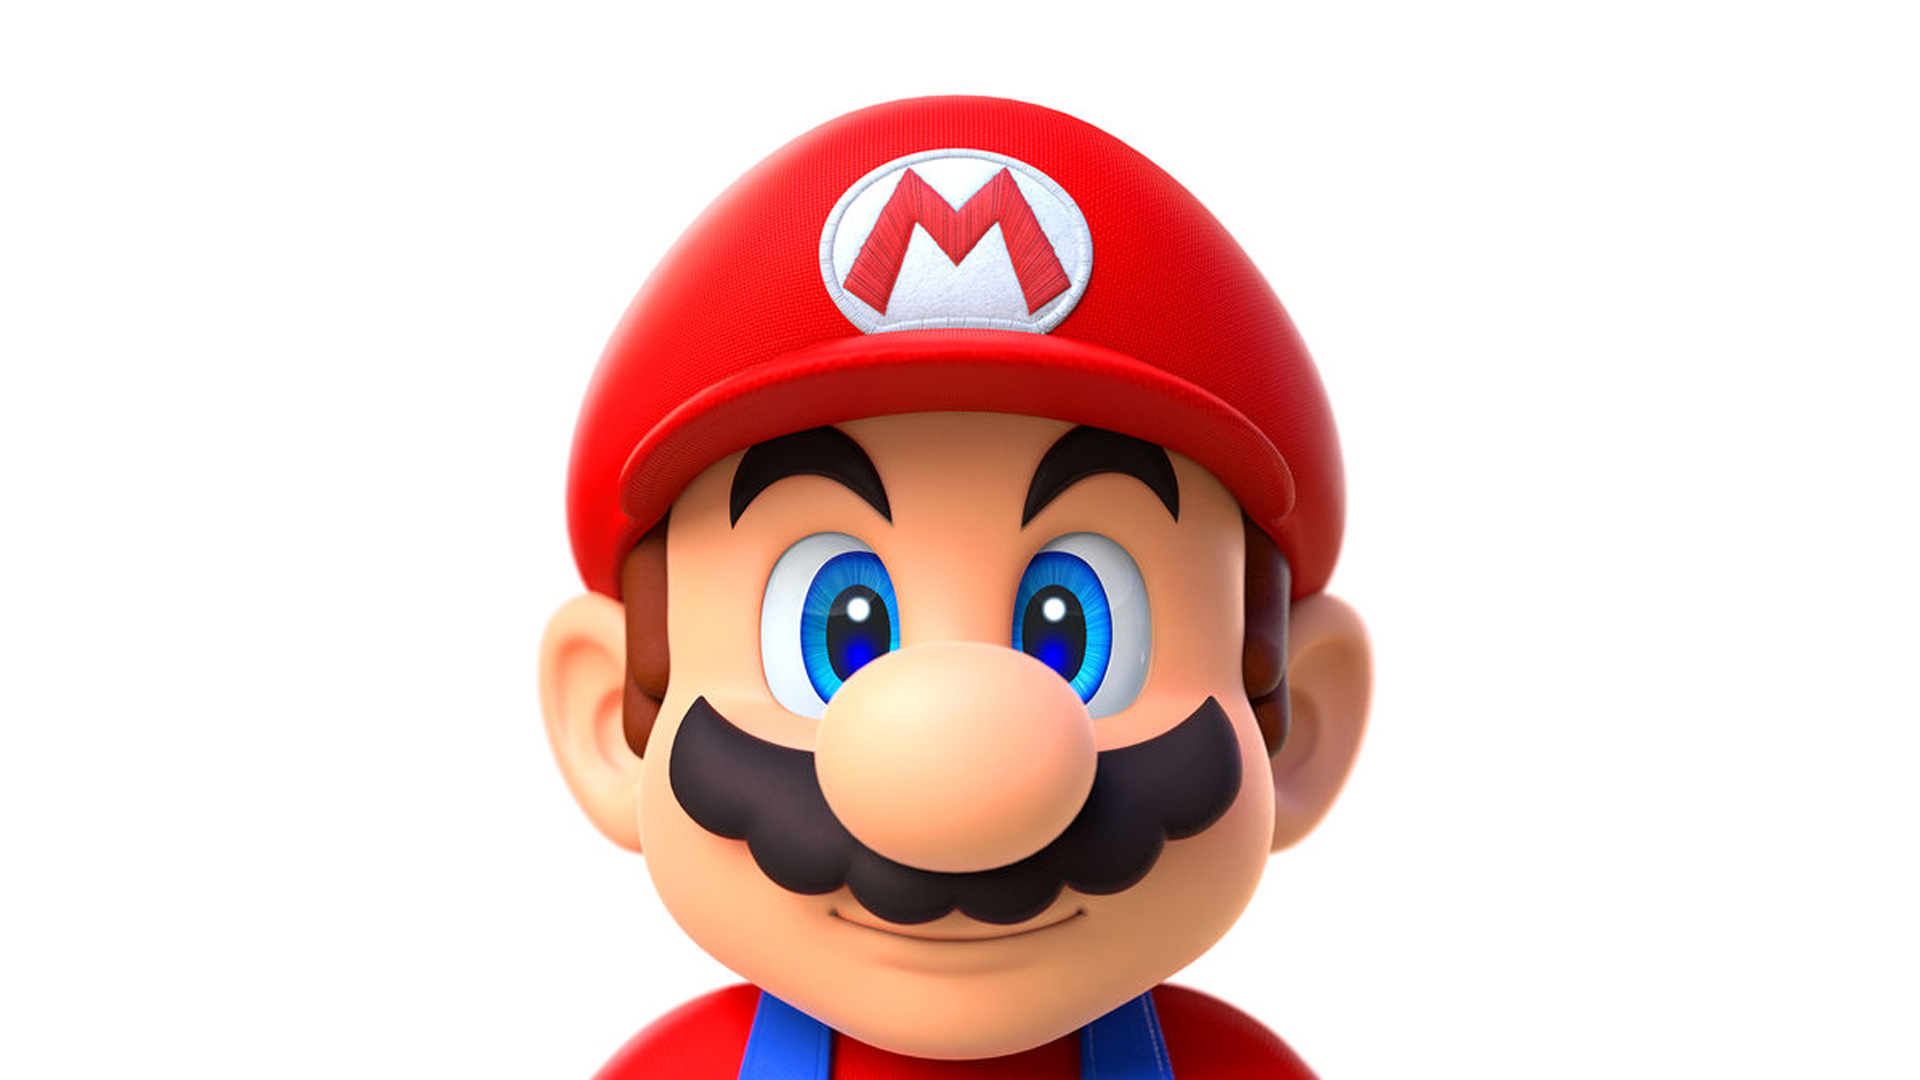 Super mario run stickers now available in the app store nintendo wire